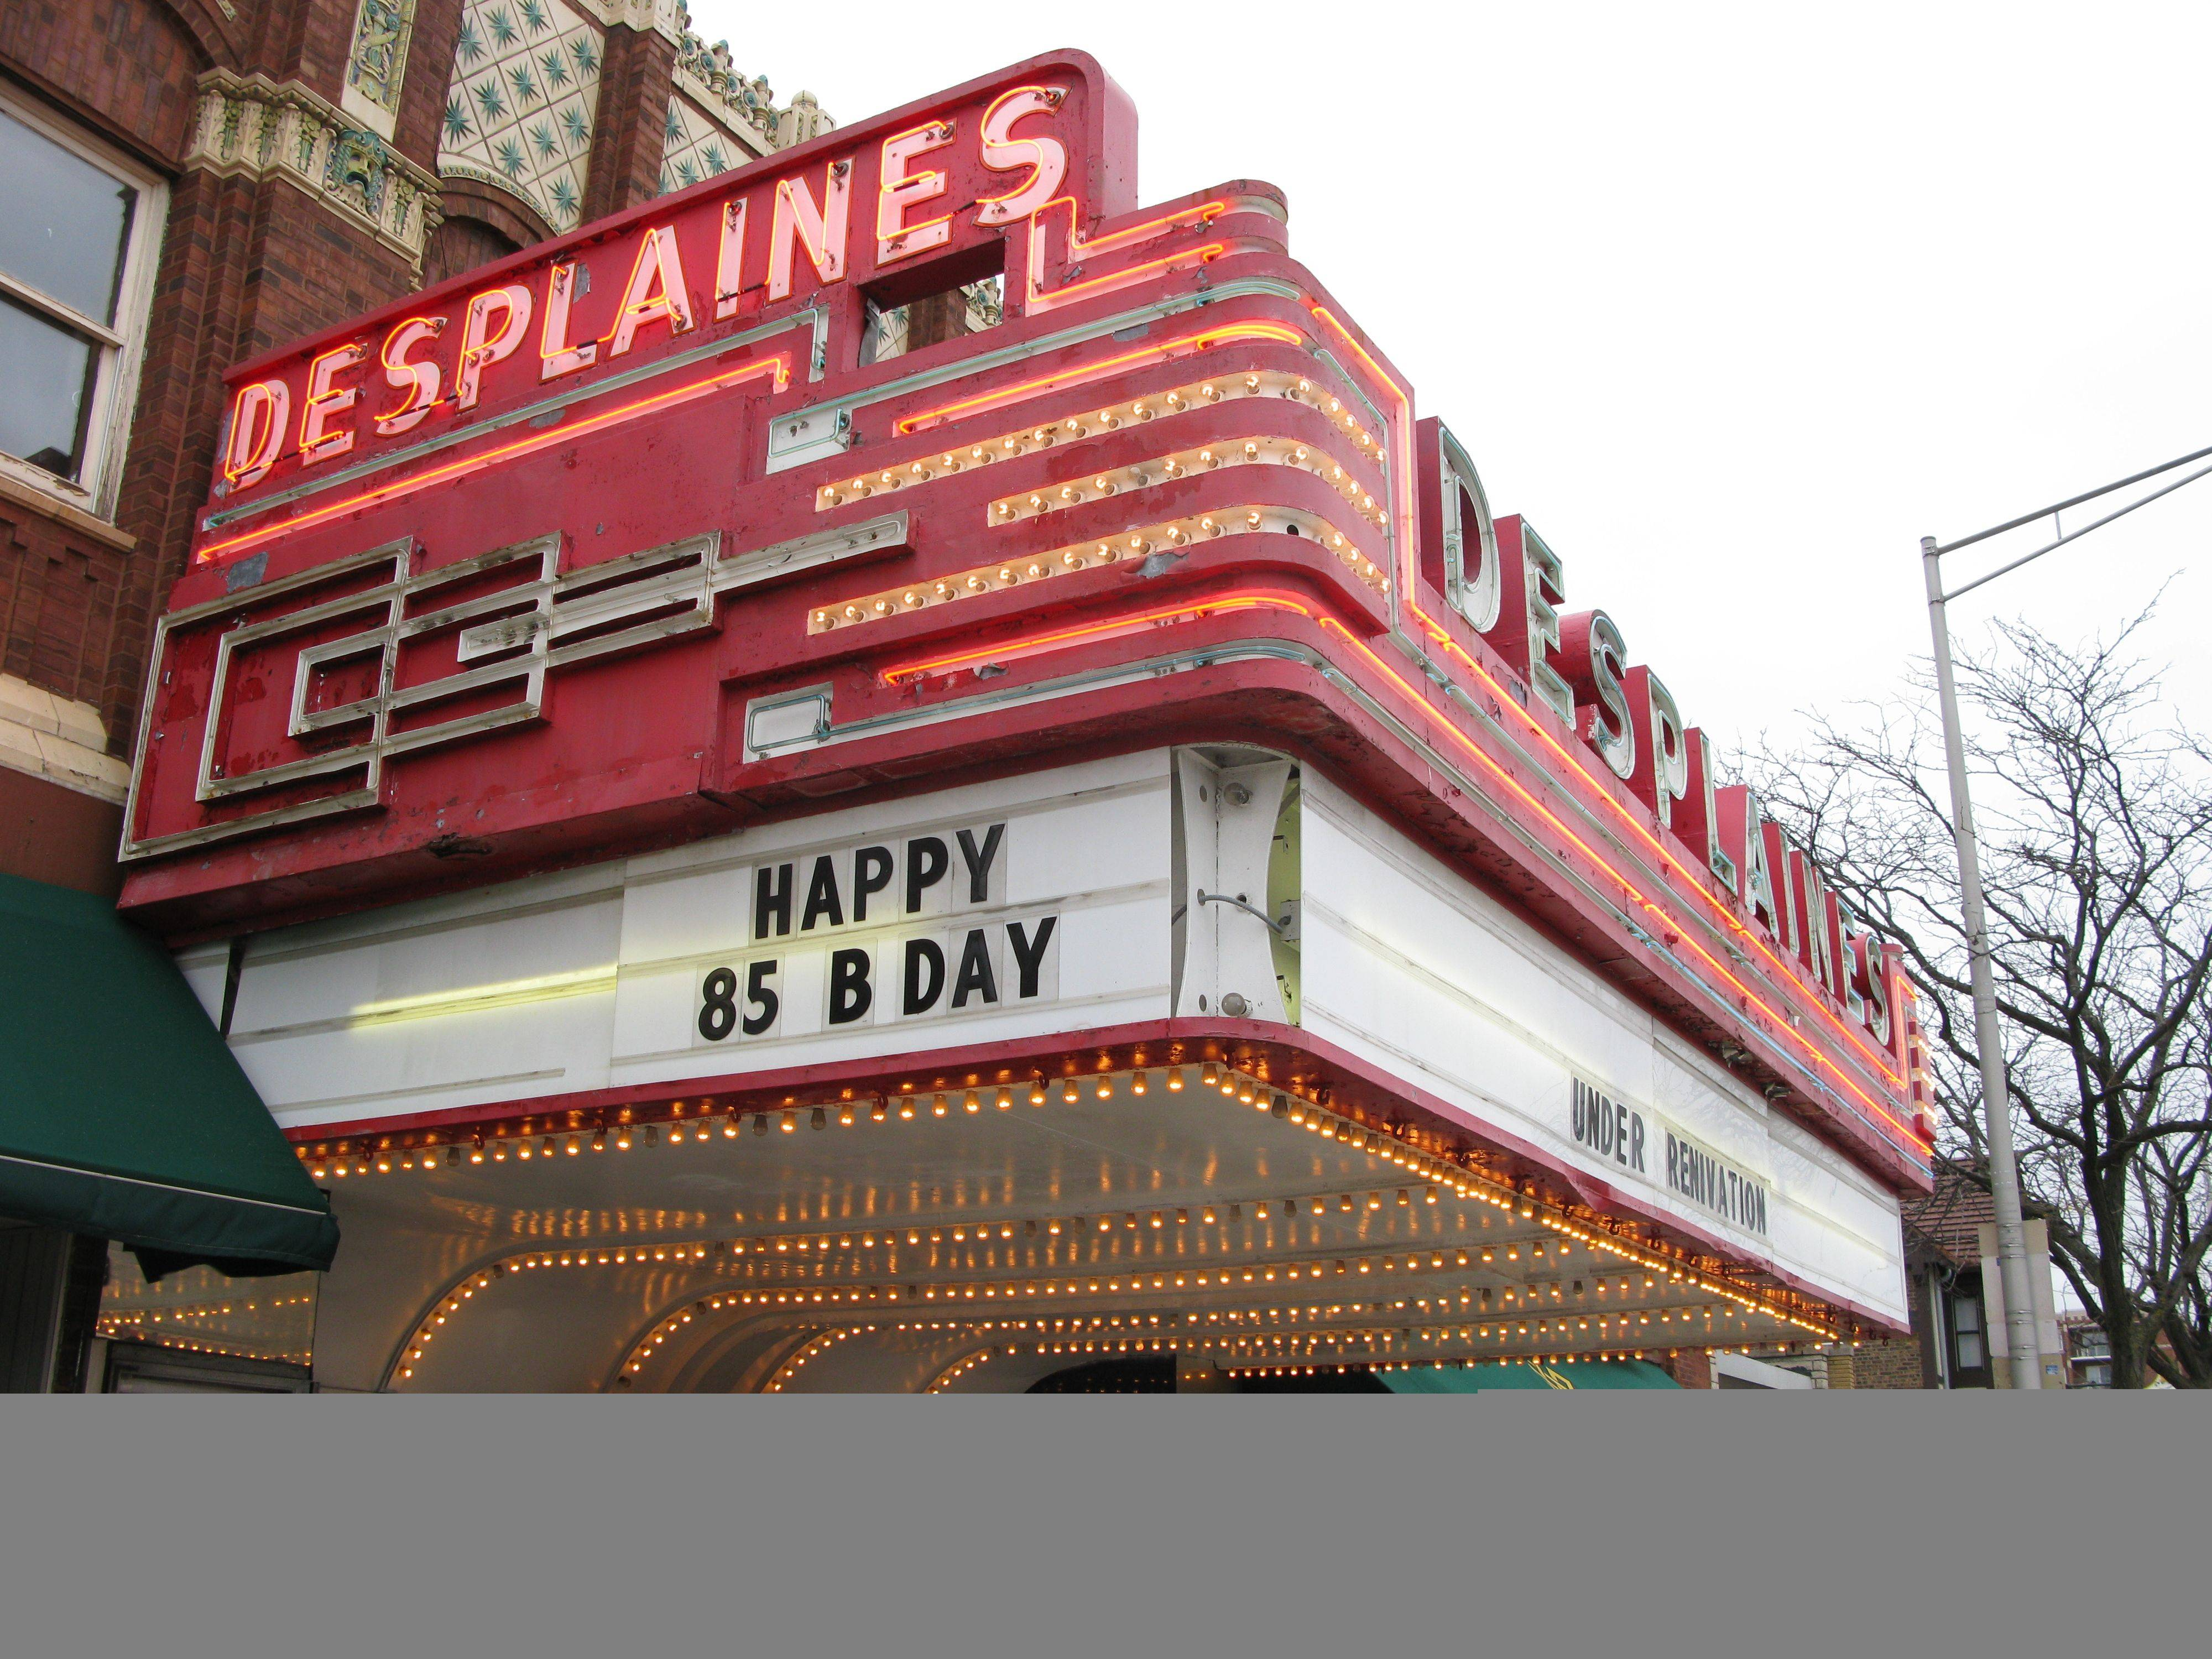 MADHU KRISHNAMURTHY/mkrishnamurthy@dailyherald.comThe historic downtown Des Plaines Theater celebrates its 85th anniversary this year. The theater is being restored and there will be celebration events throughout the coming year.